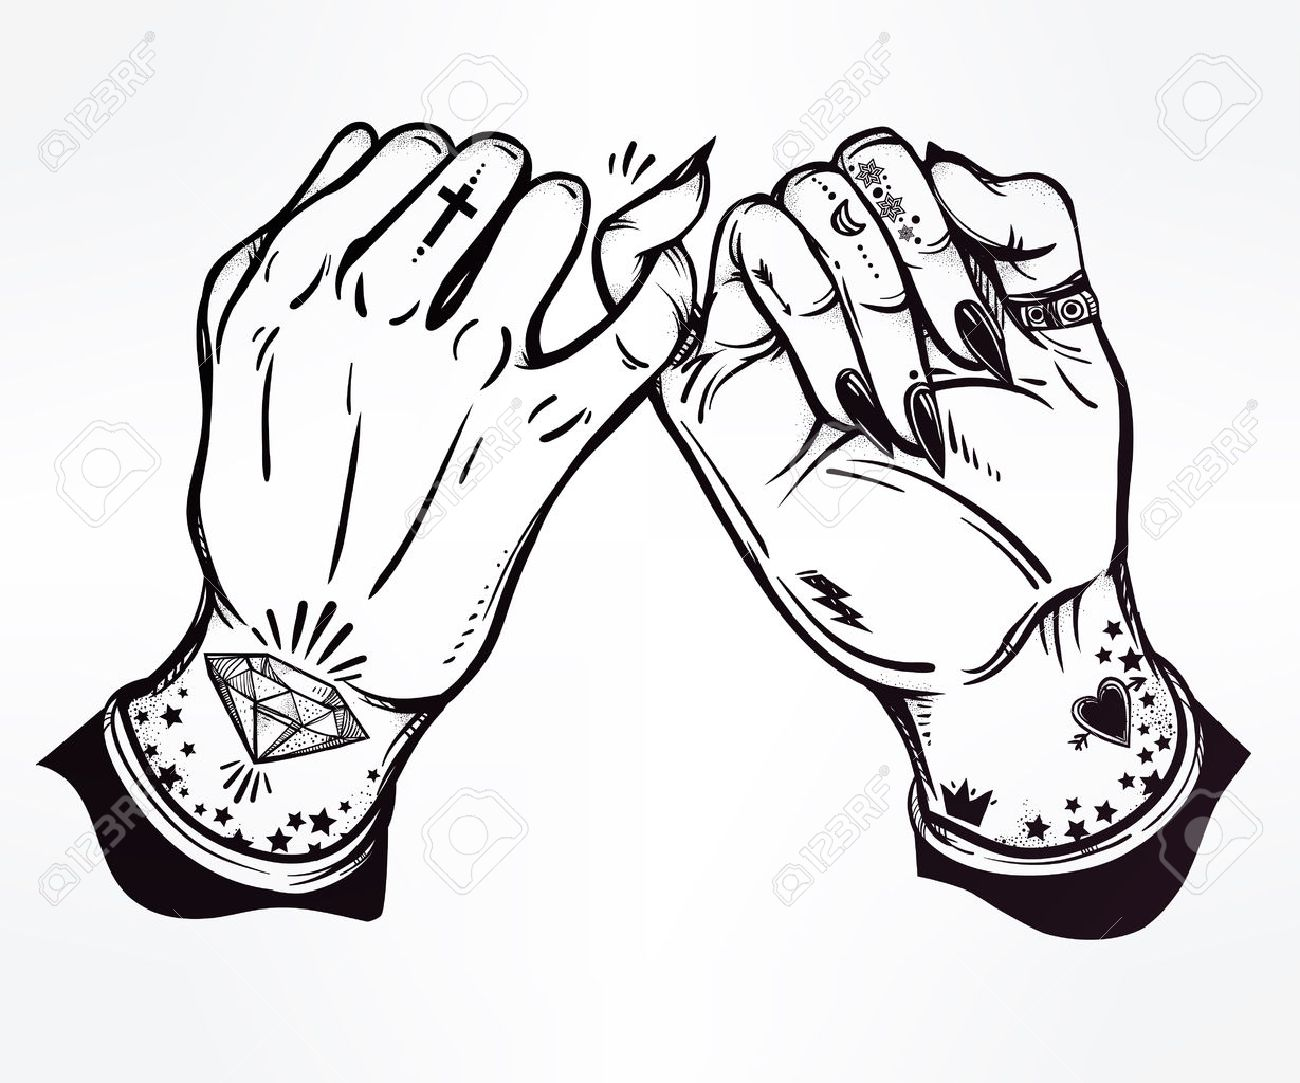 Pinky promise hand holding hands are tattooed ghetto and gothic pinky promise hand holding hands are tattooed ghetto and gothic style inspired buycottarizona